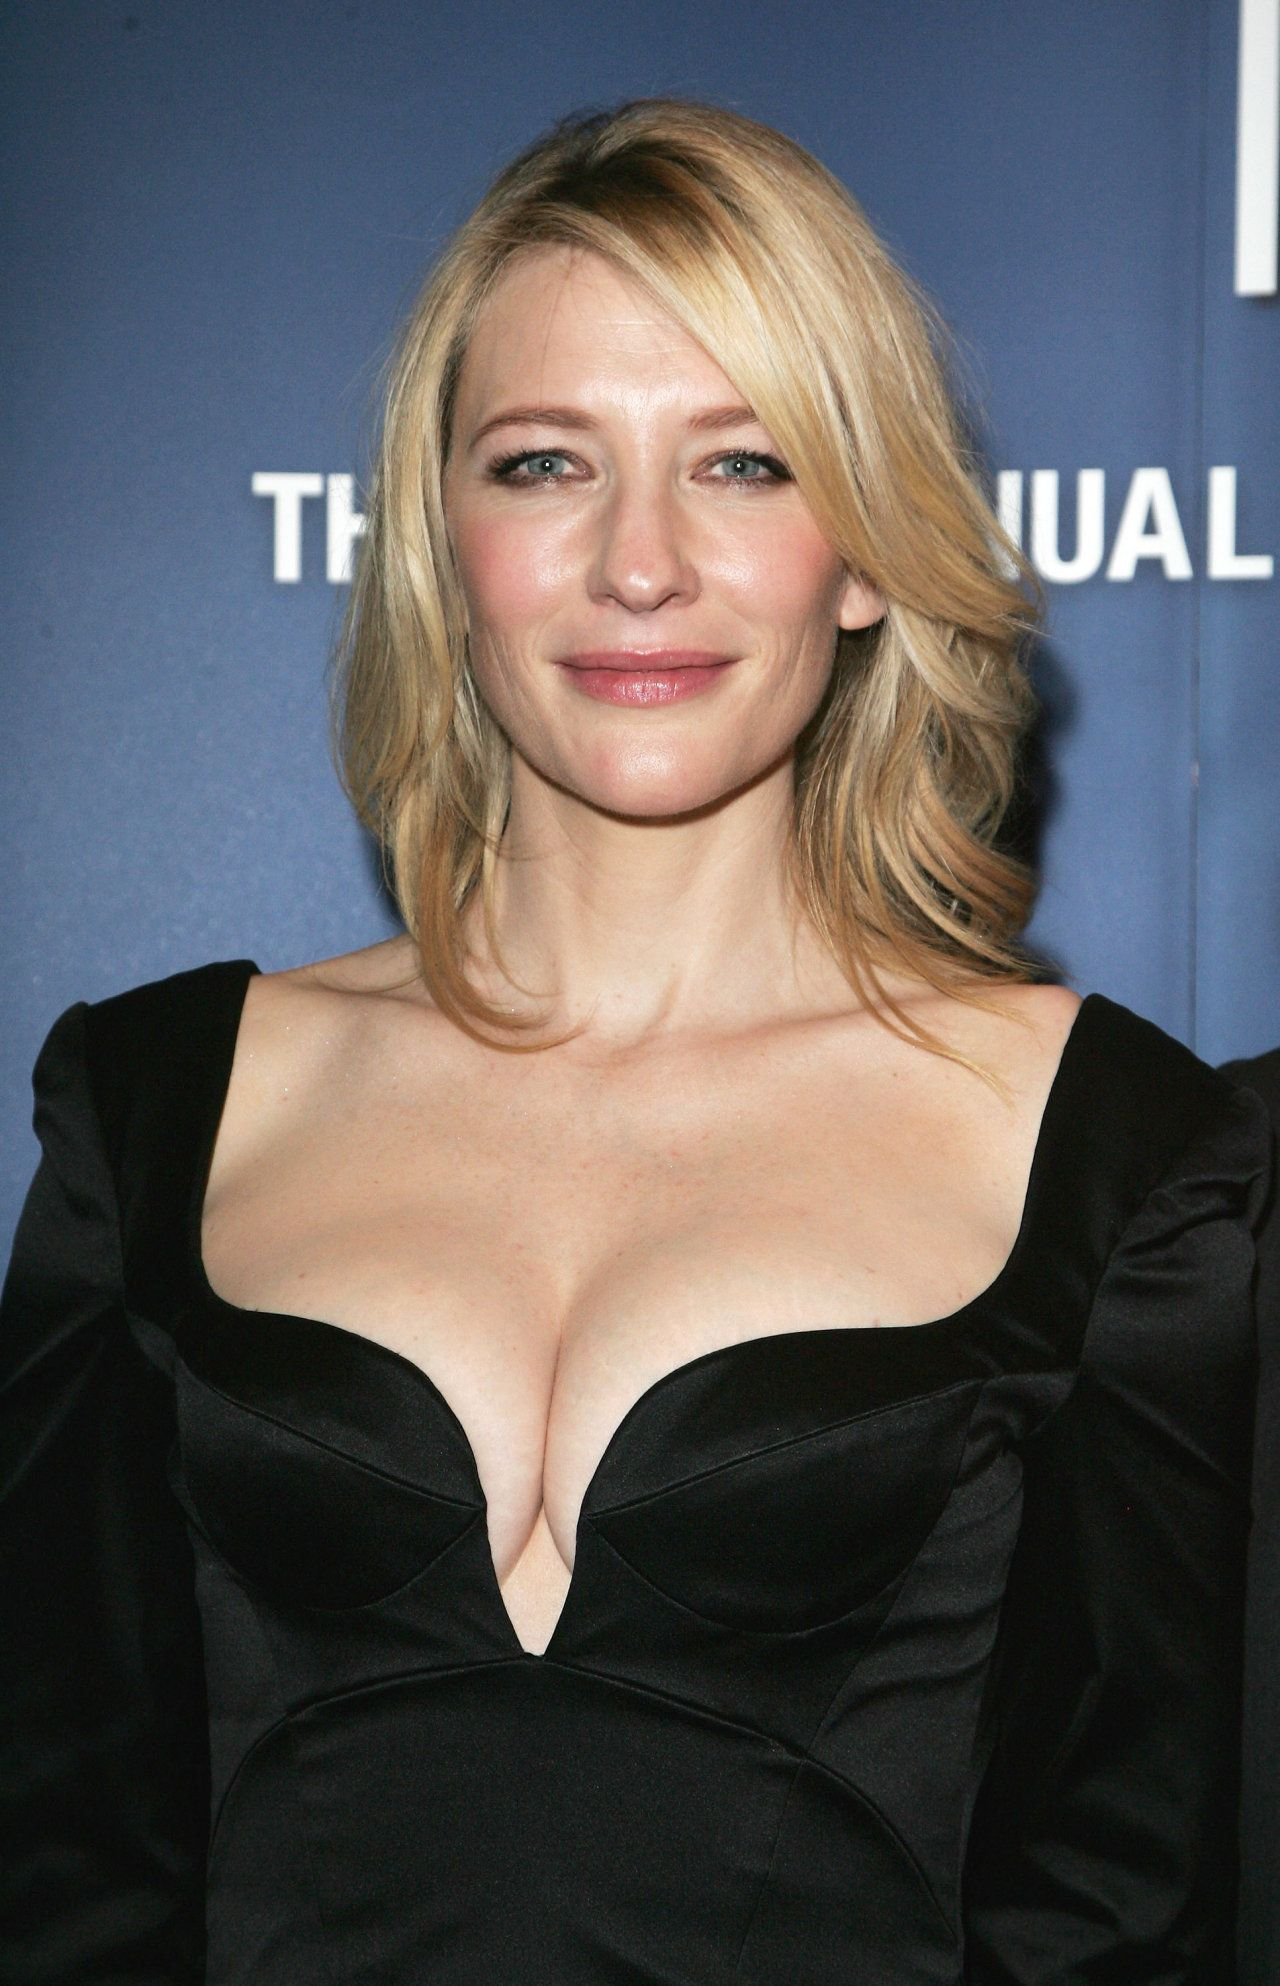 Hot Cate Blanchett nude (58 foto and video), Topless, Leaked, Feet, legs 2015